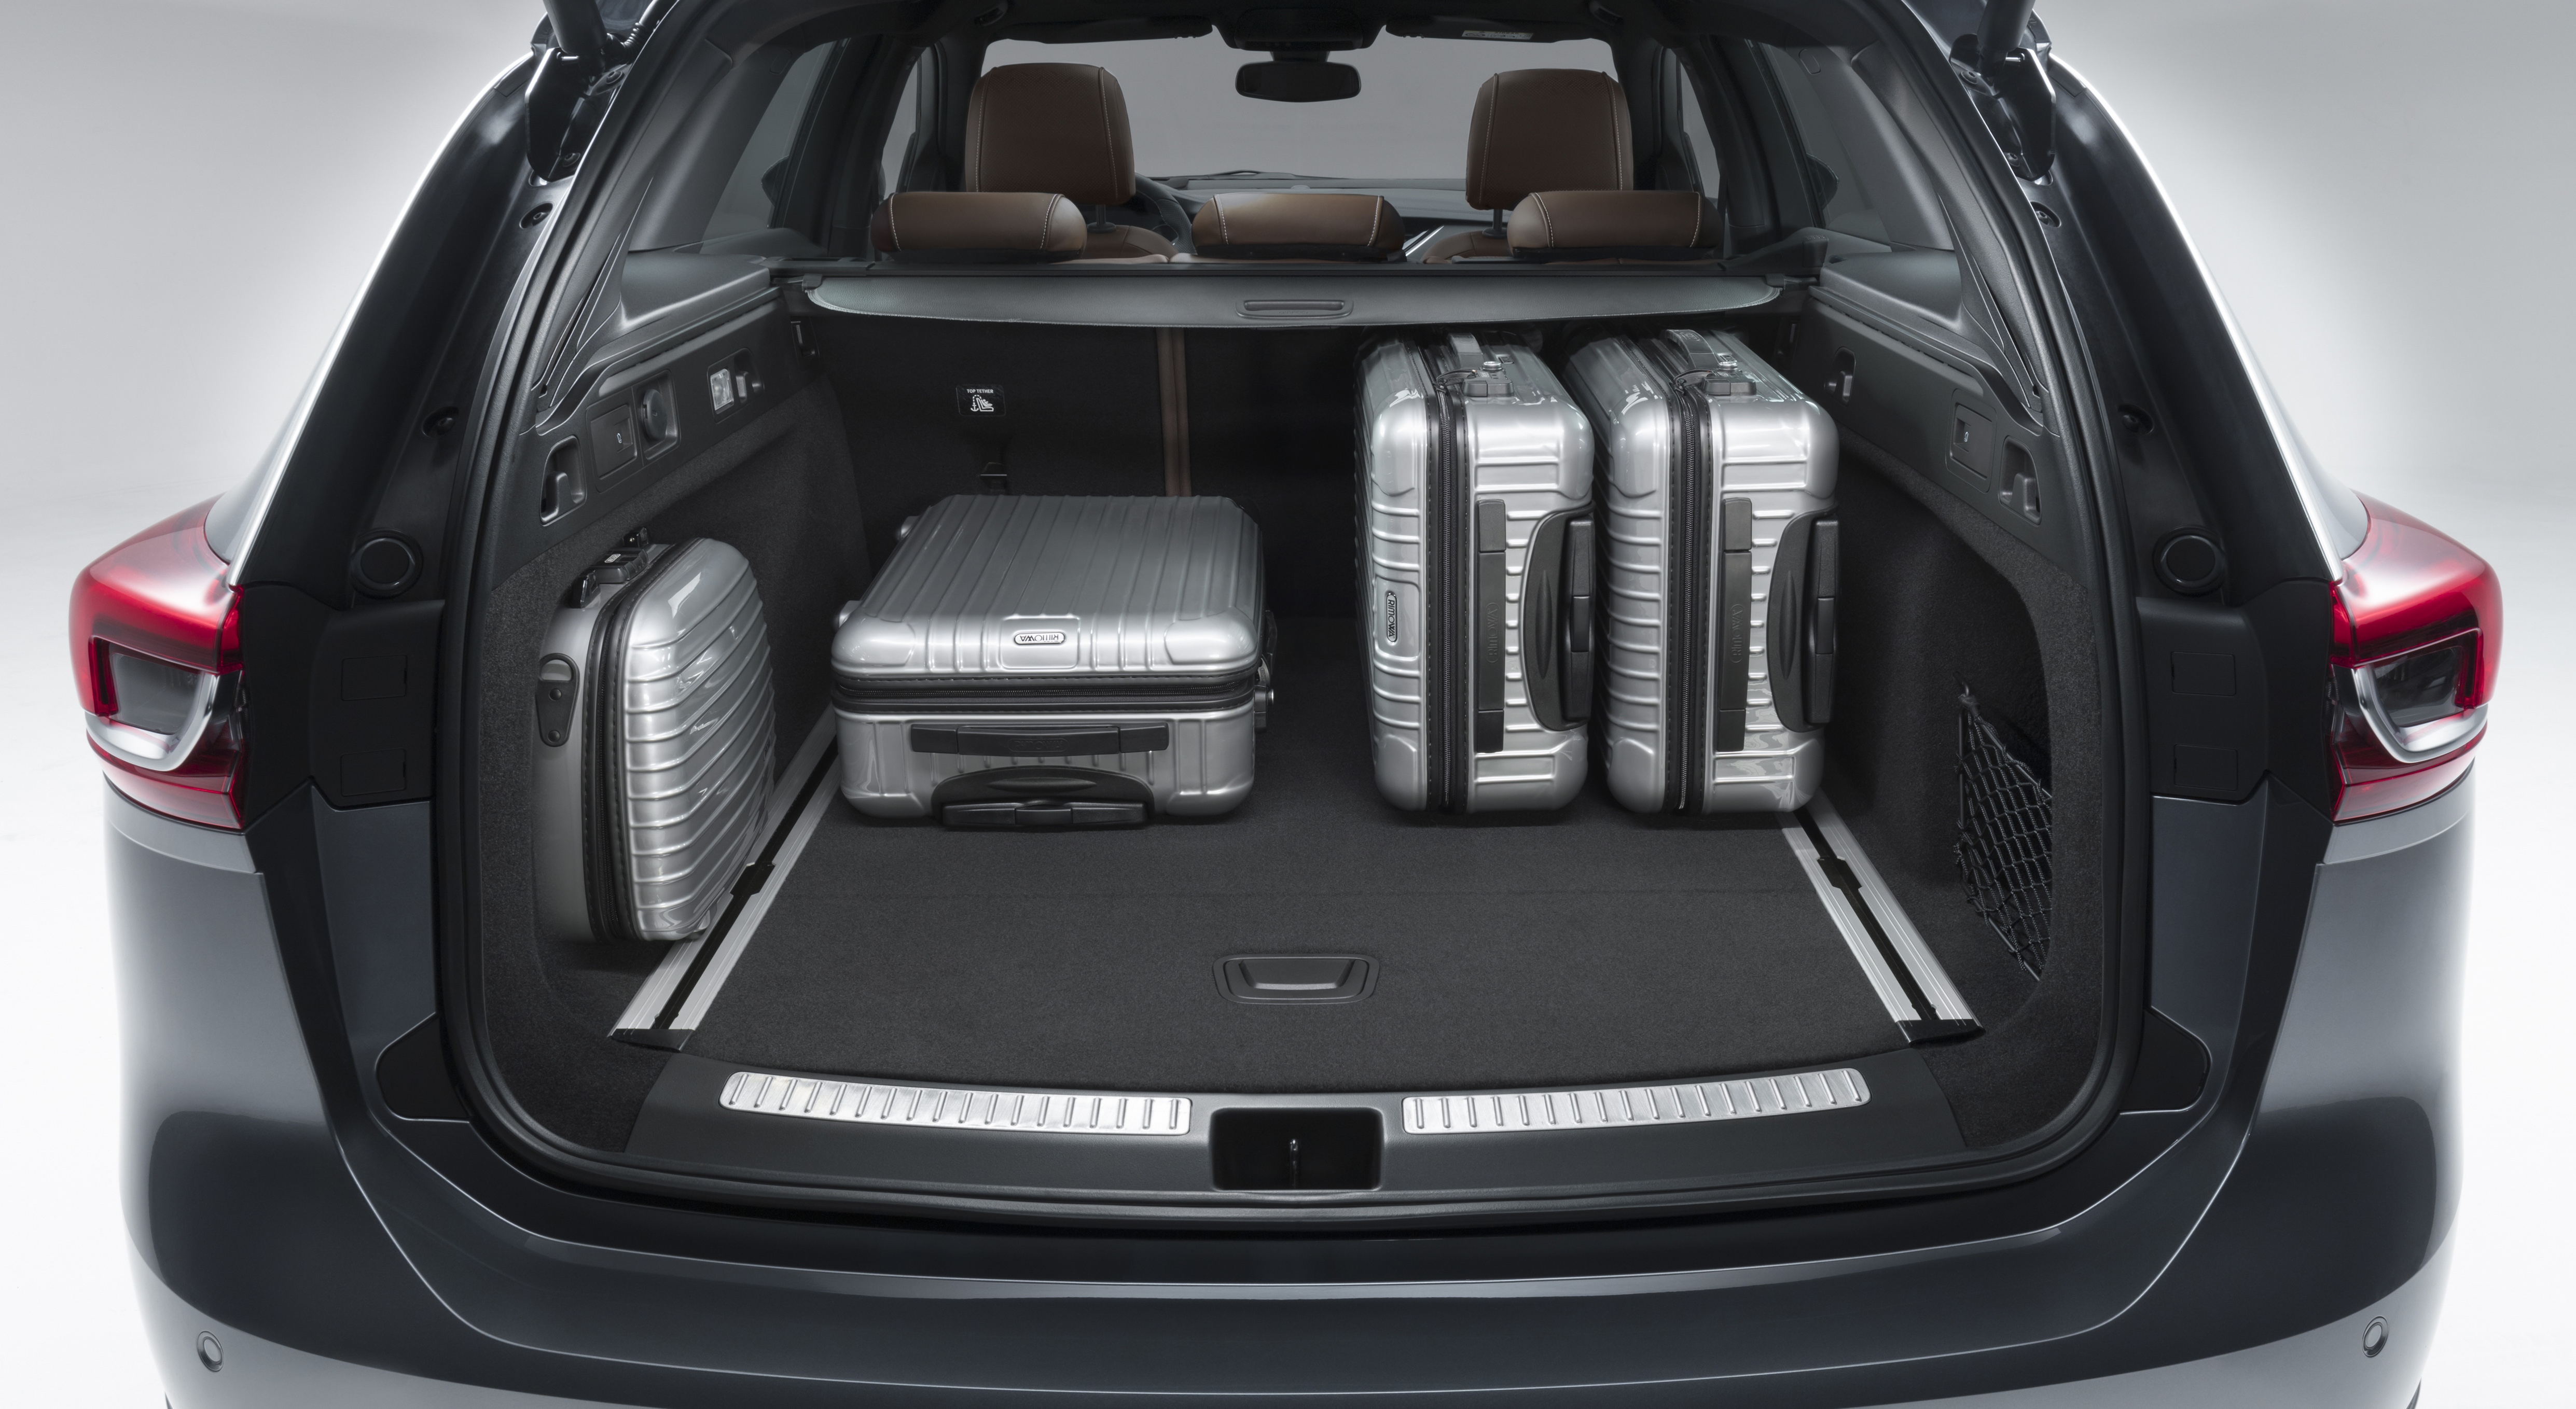 The Insignia's boot is large enough for all occasions